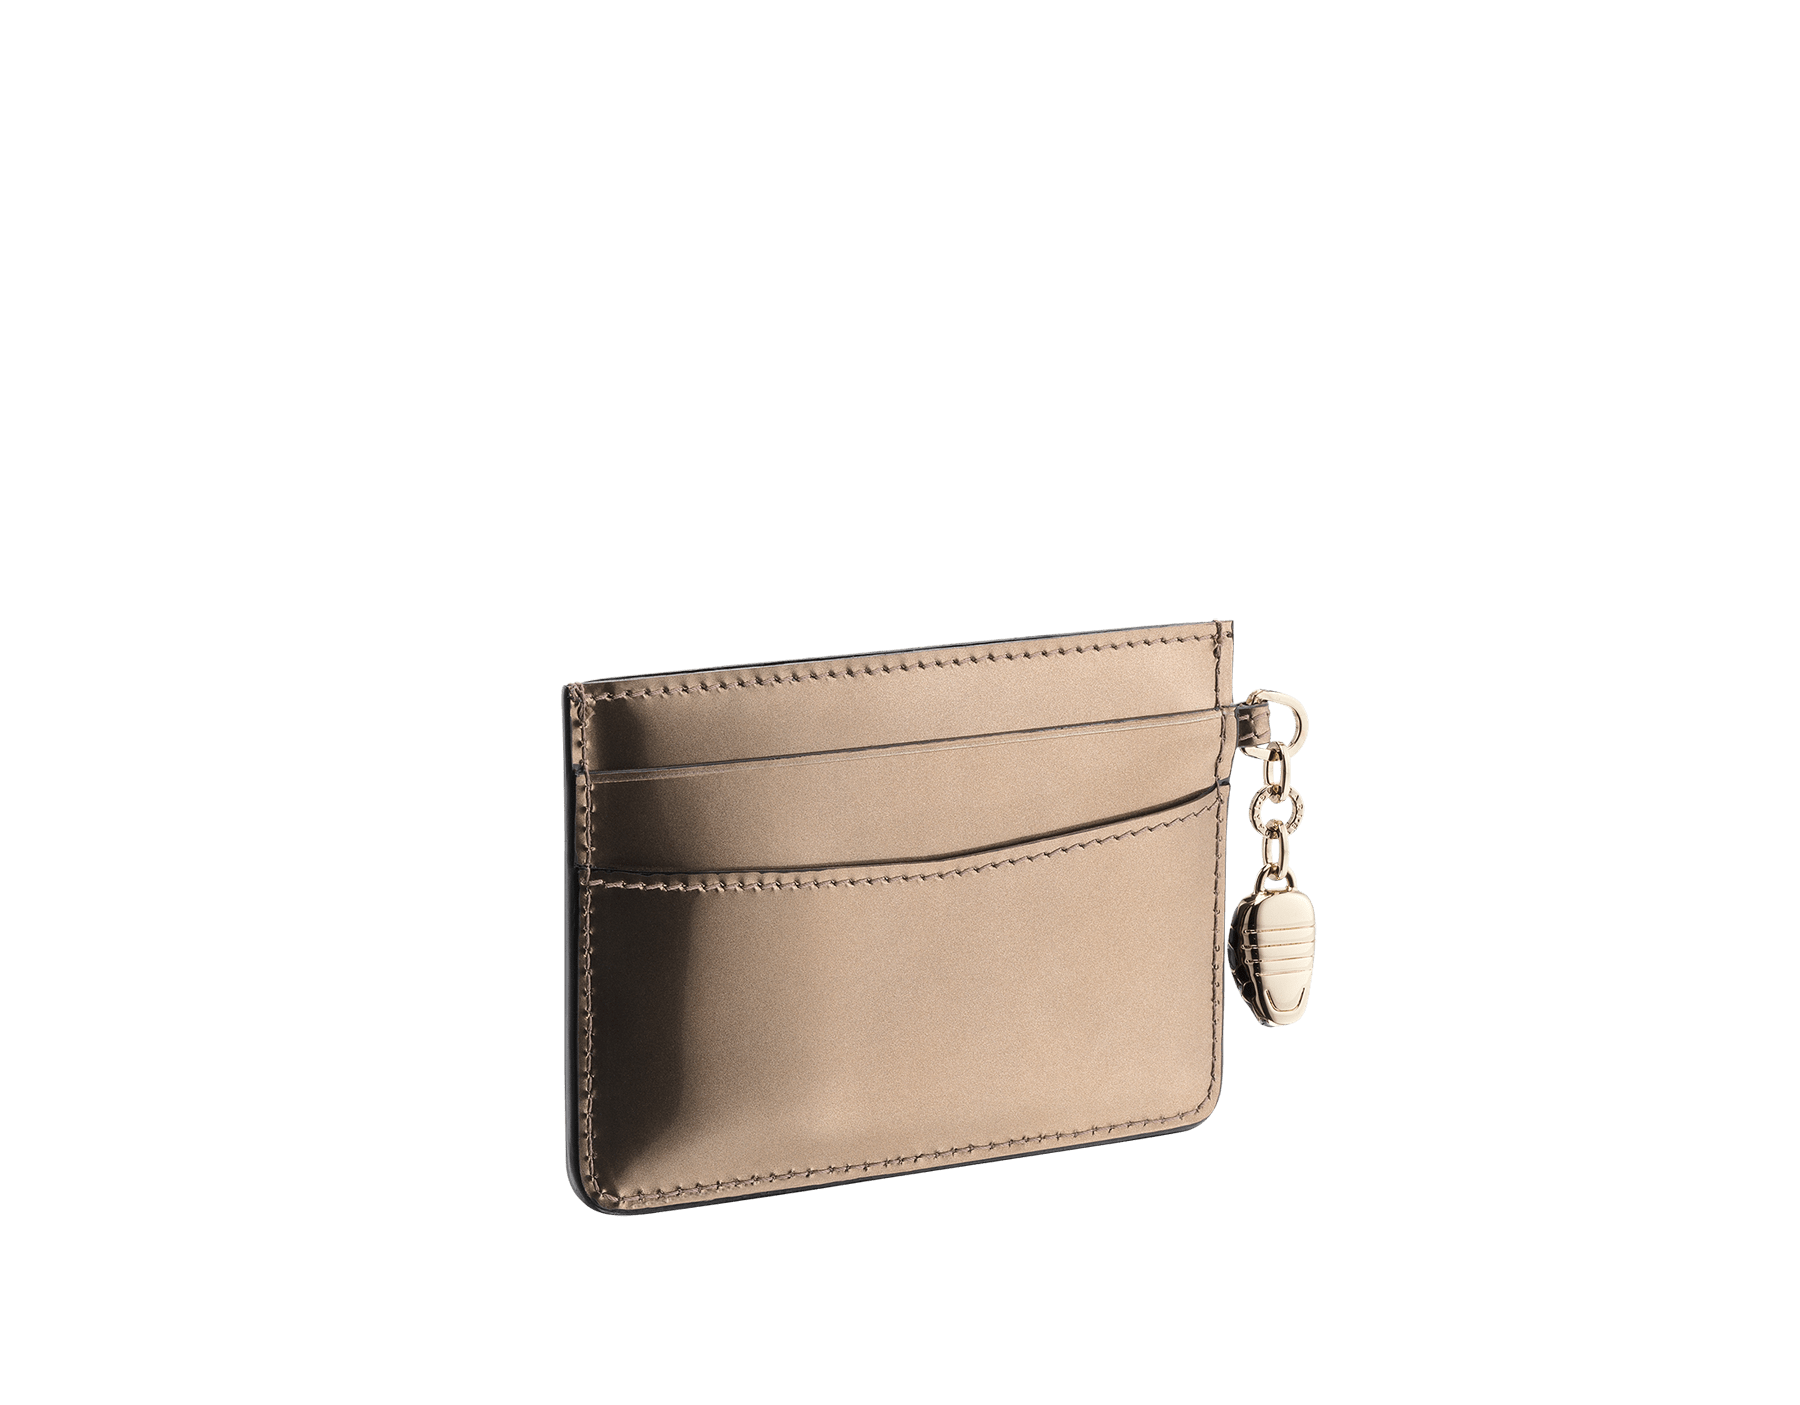 Credit card holder in antique bronze brushed metallic calf leather and black calf leather. Serpenti charm in black and white enamel with green malachite enamel eyes and Bulgari logo in metal characters. 282029 image 2